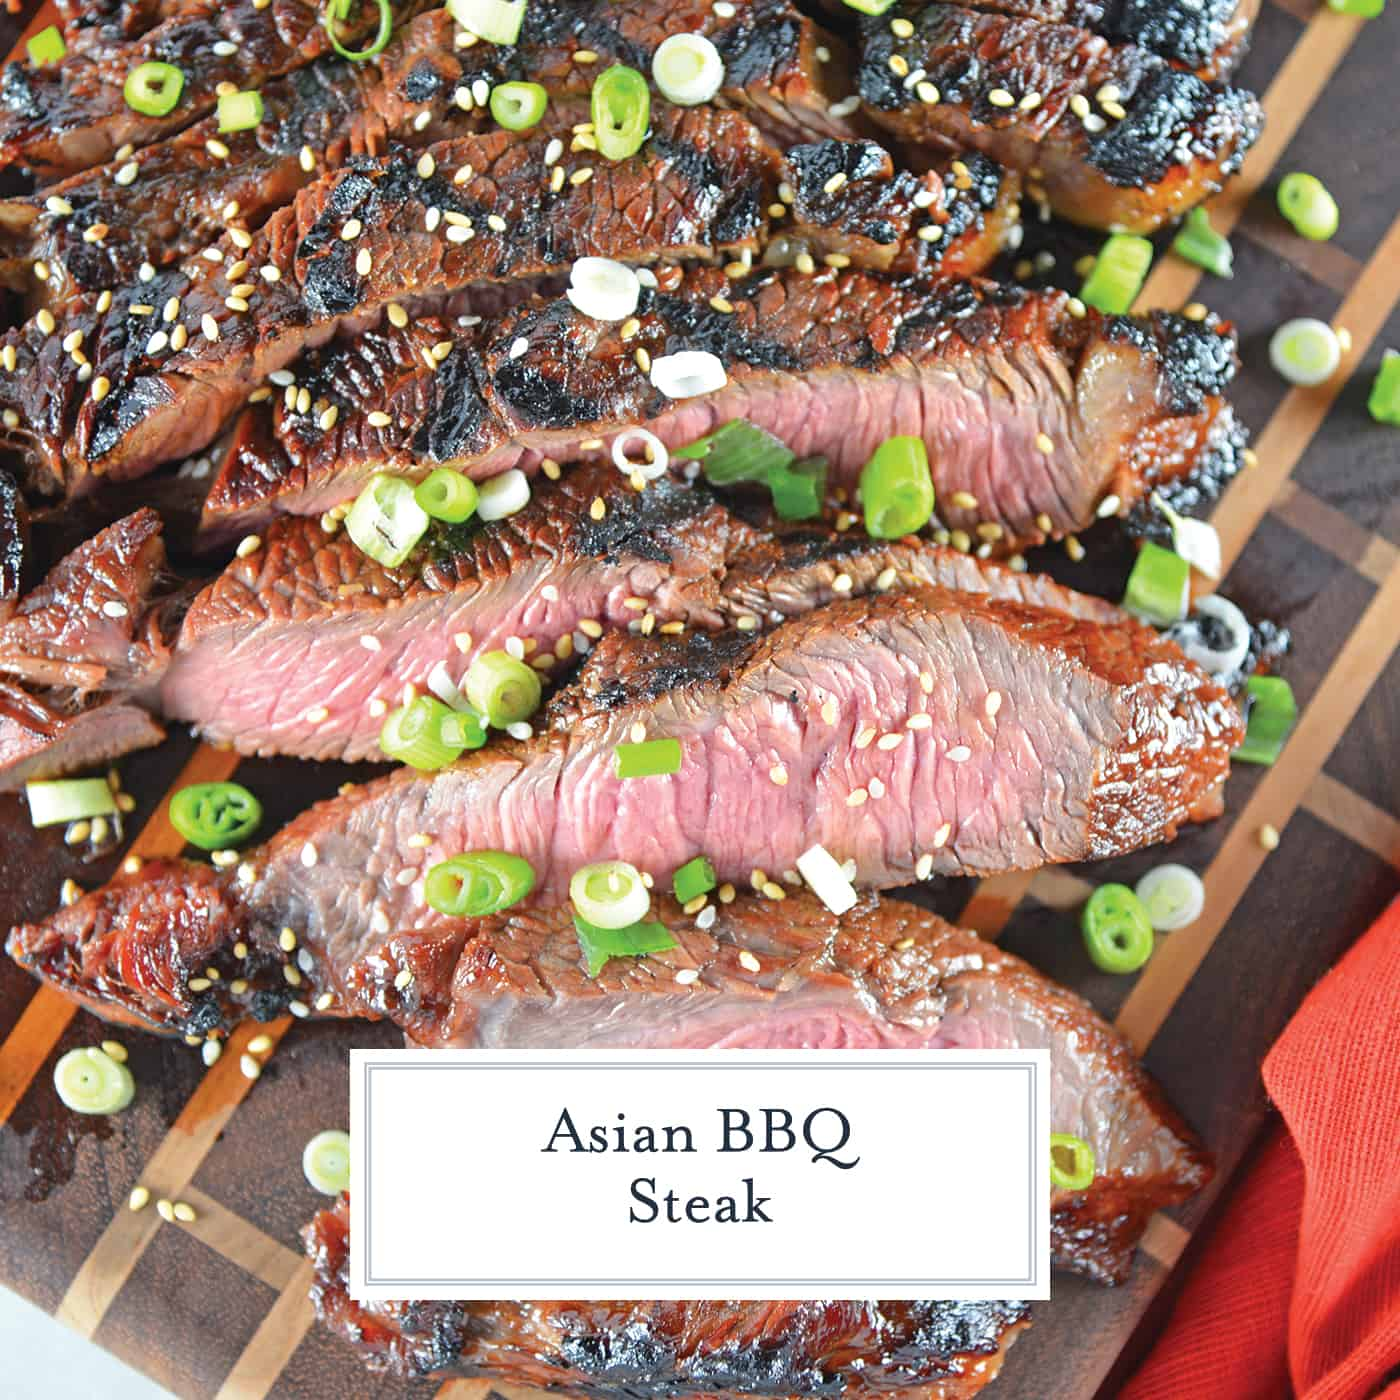 Asian BBQ Steak marinade can be used on any cut of beef, combining traditional Asian flavors like soy sauce, honey, ginger, sesame and garlic. #steakmarinade #bbqsteak #beefrecipe www.savoryexperiments.com